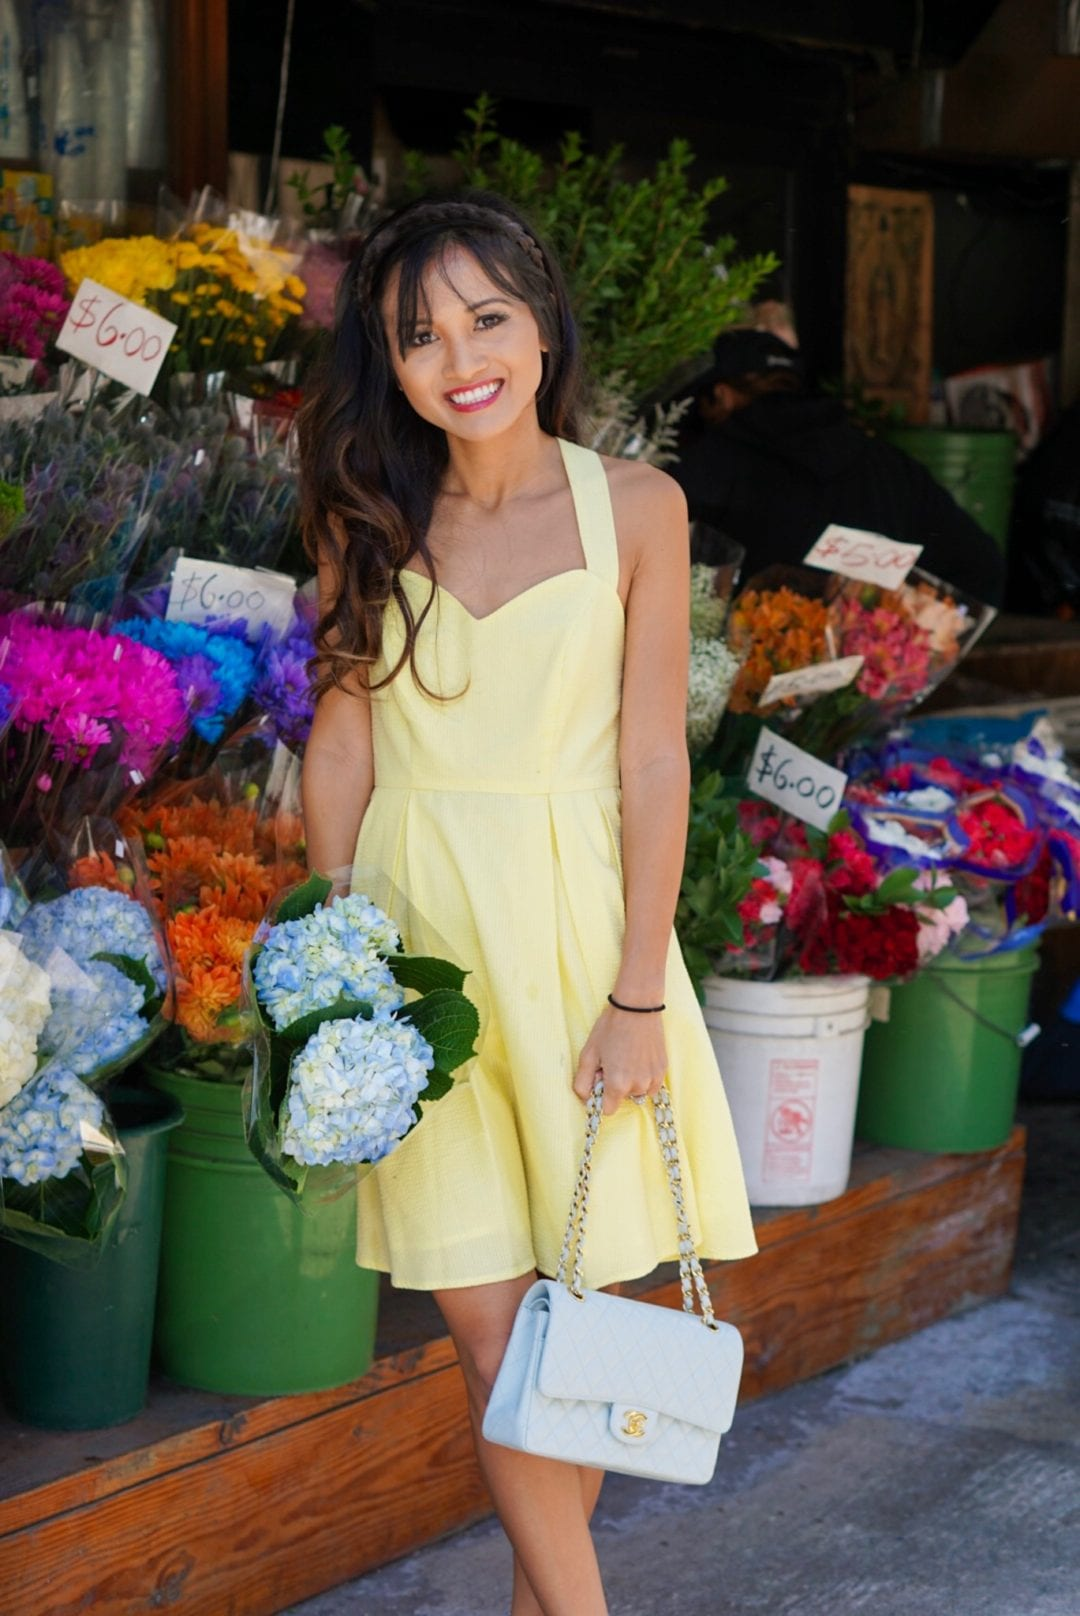 yellow dress, yellow seersucker dress, seersucker dress, Chanel bag, flower shop, NYC, NYC flower shop